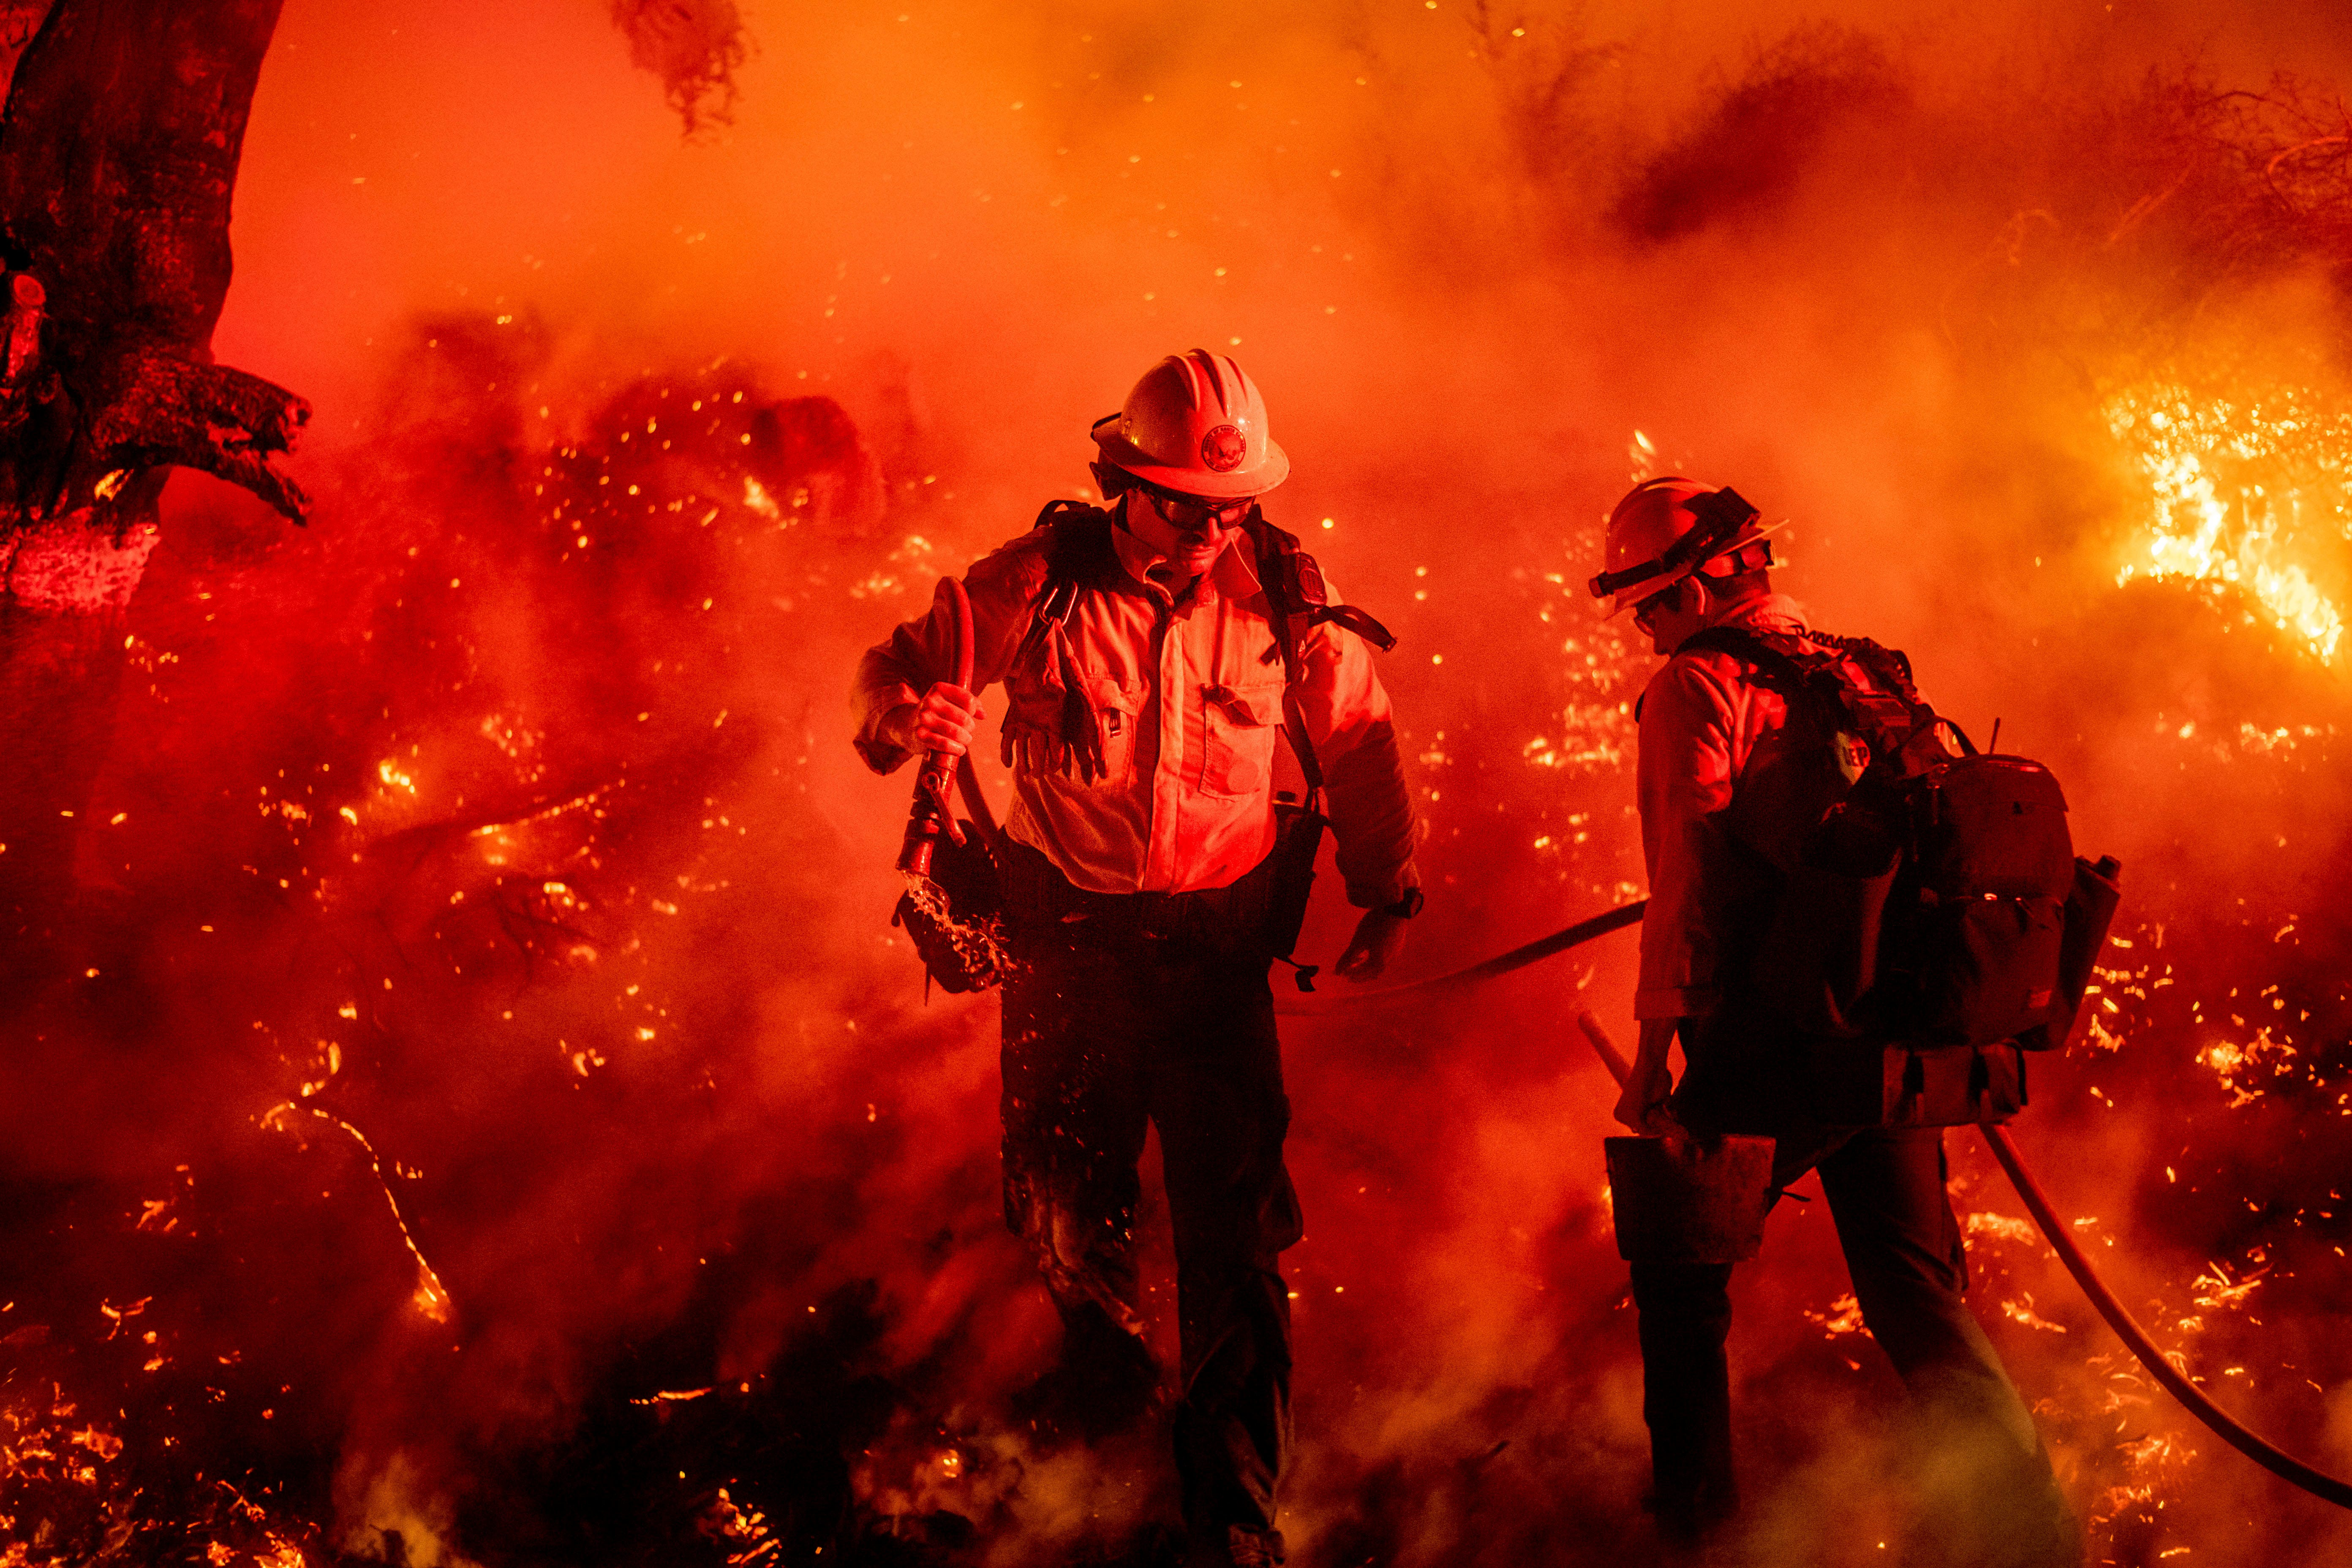 Northern California double-whammy: Amid blackouts, massive fire forces nearly 200,000 to flee homes